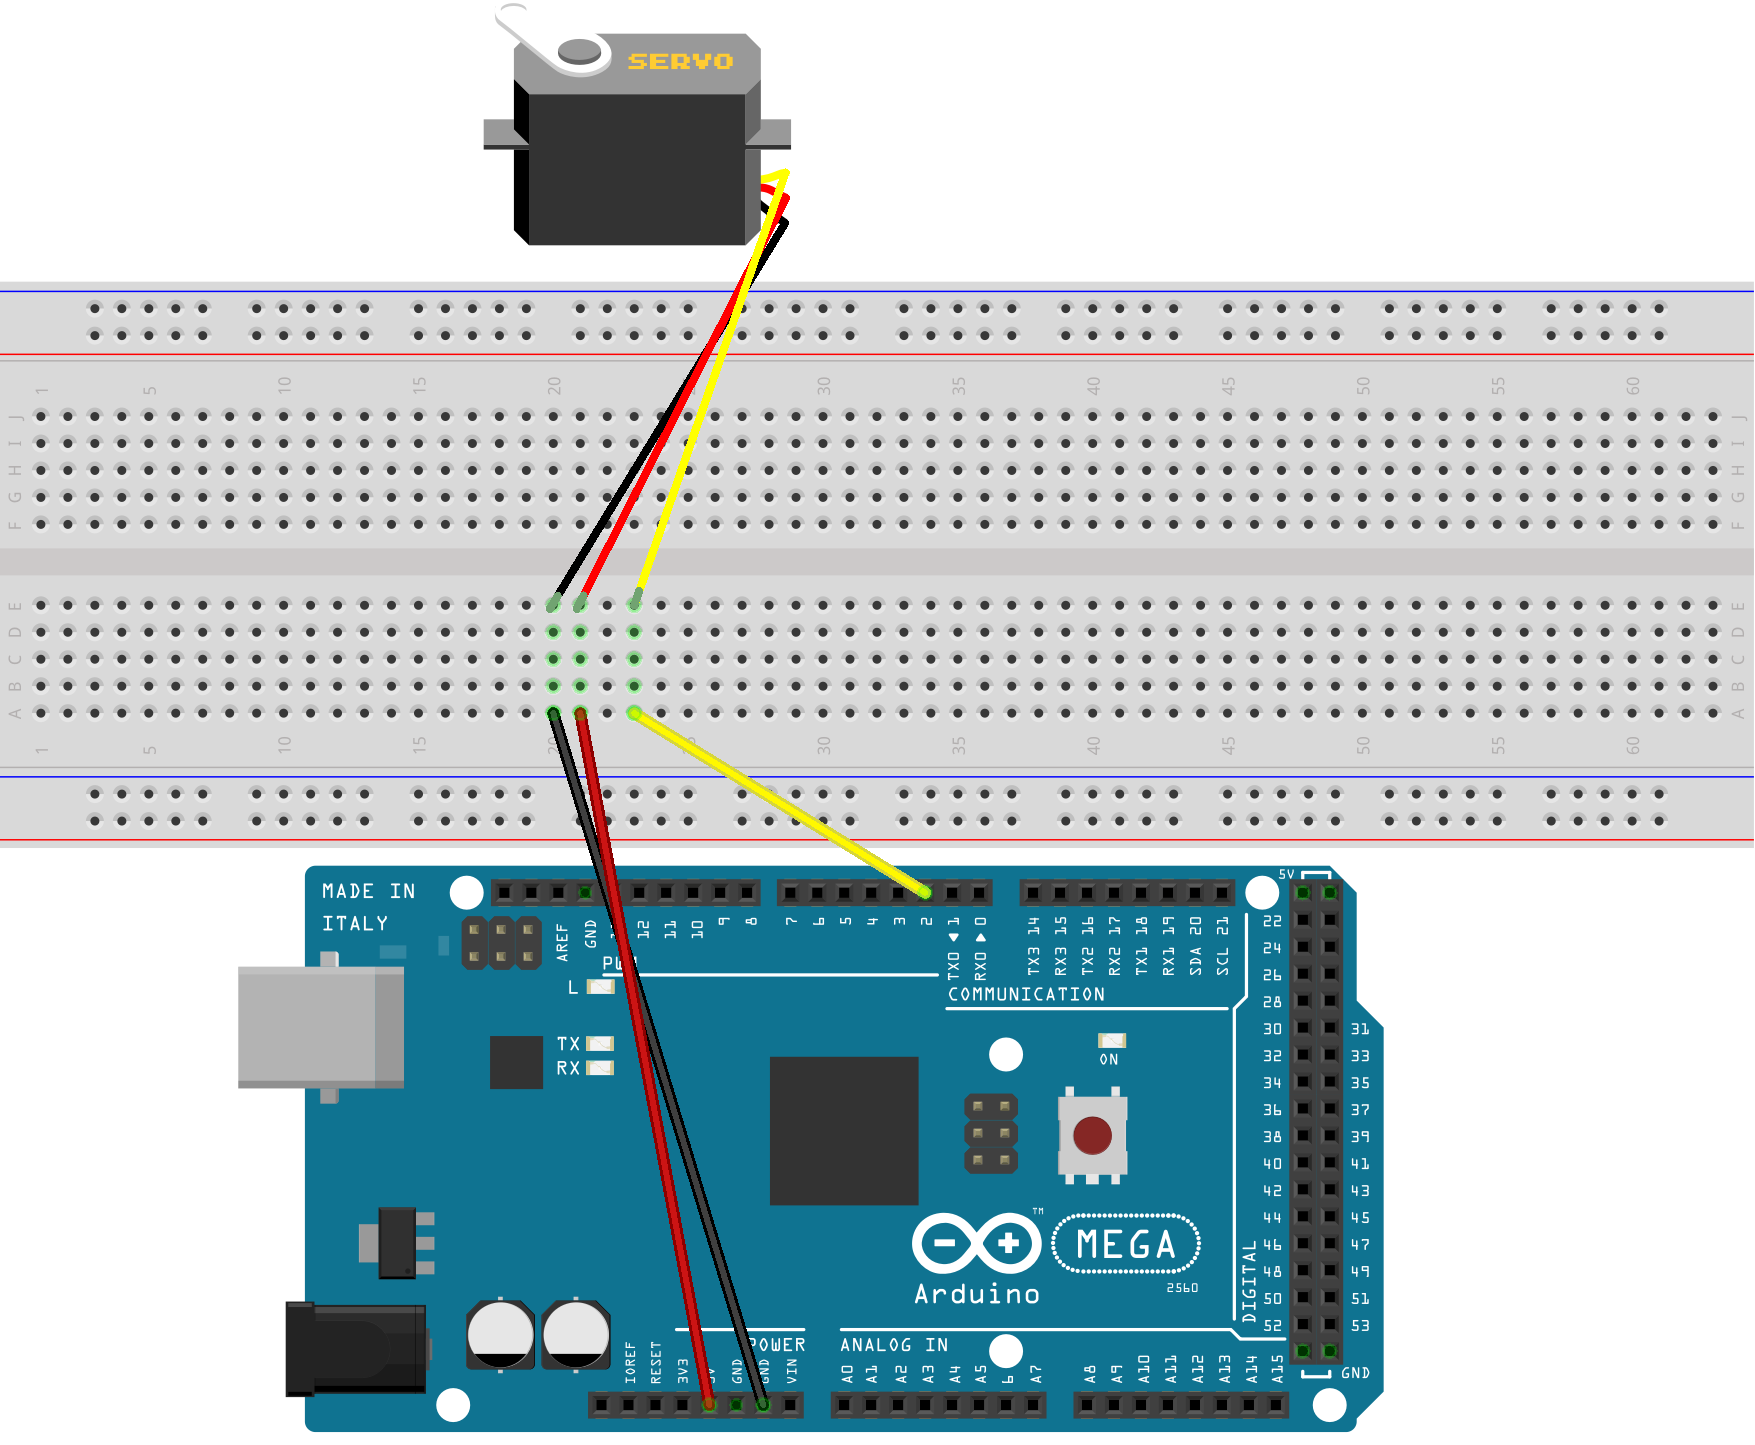 Activity 11 - Servo and Ultrasonic Sensor